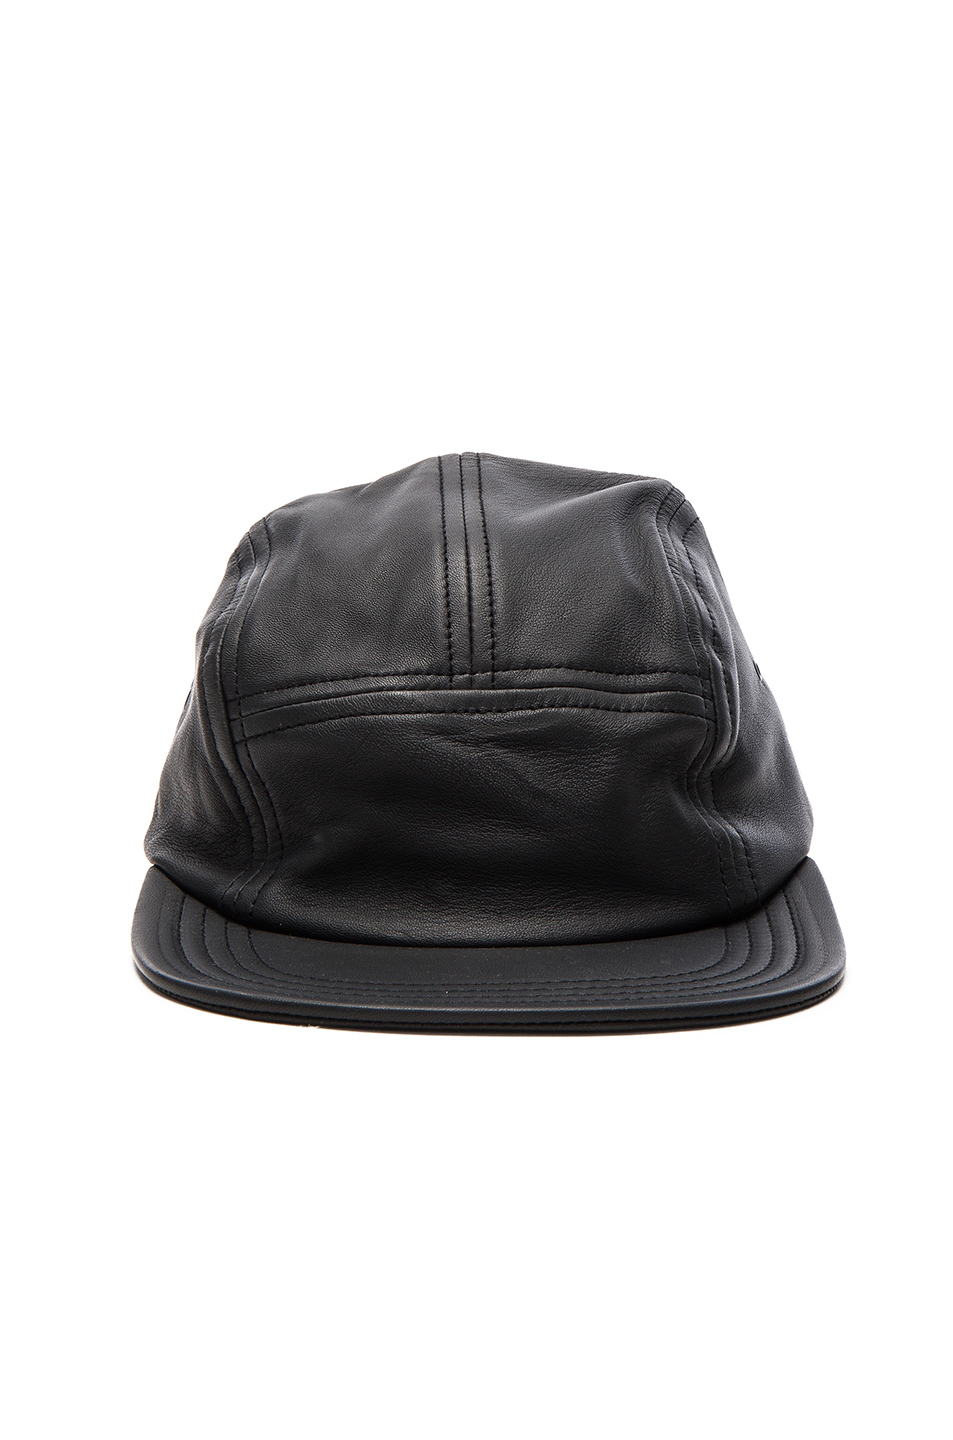 Hender Scheme Sheep Jet Cap in Black